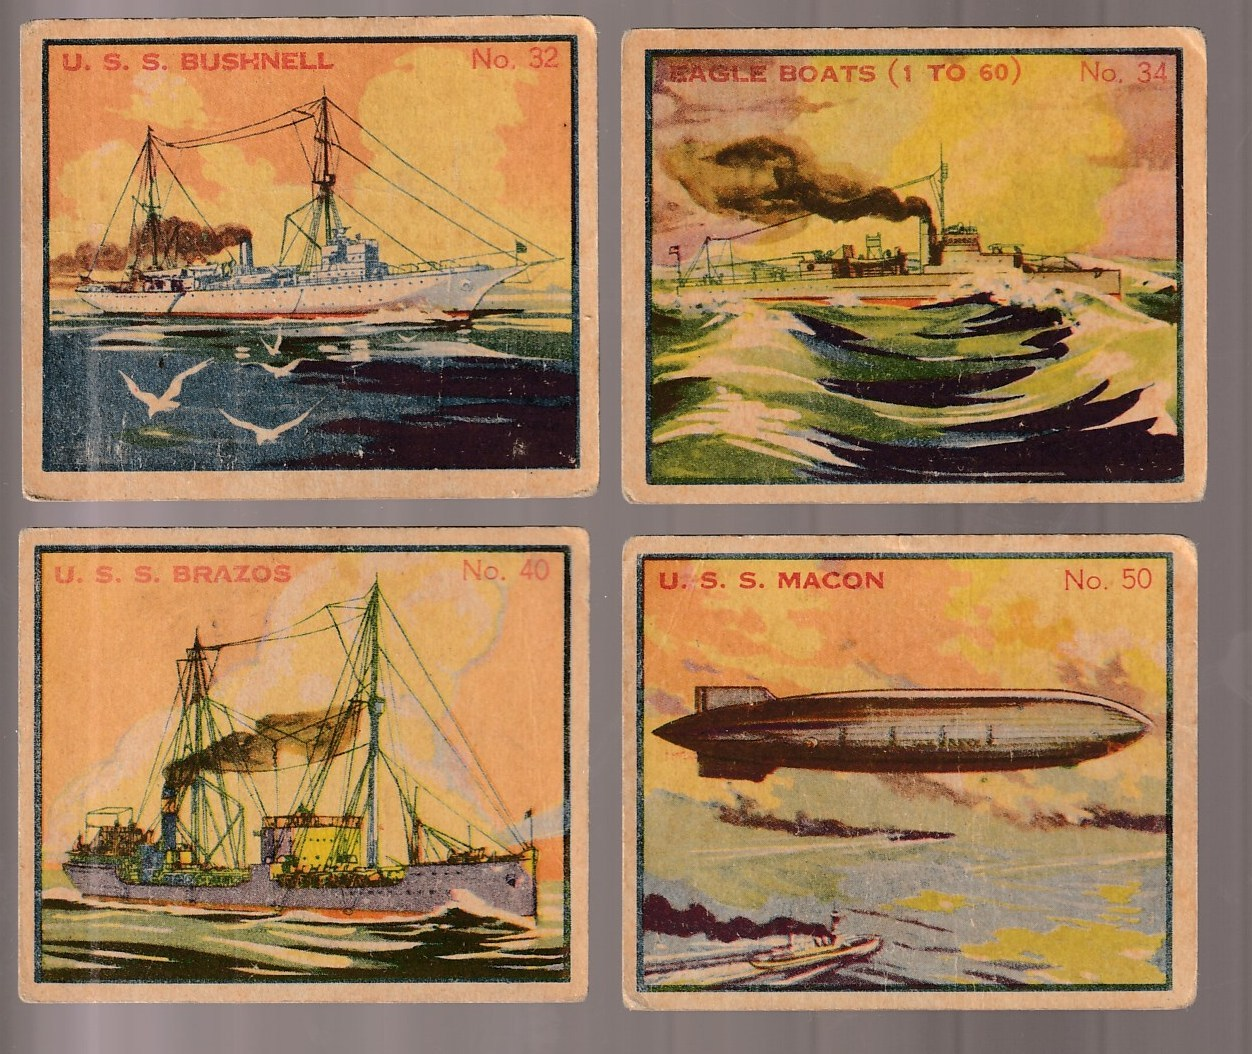 1936 Battleship Gum #50 U.S.S. Macon - Rigid Airship n cards value